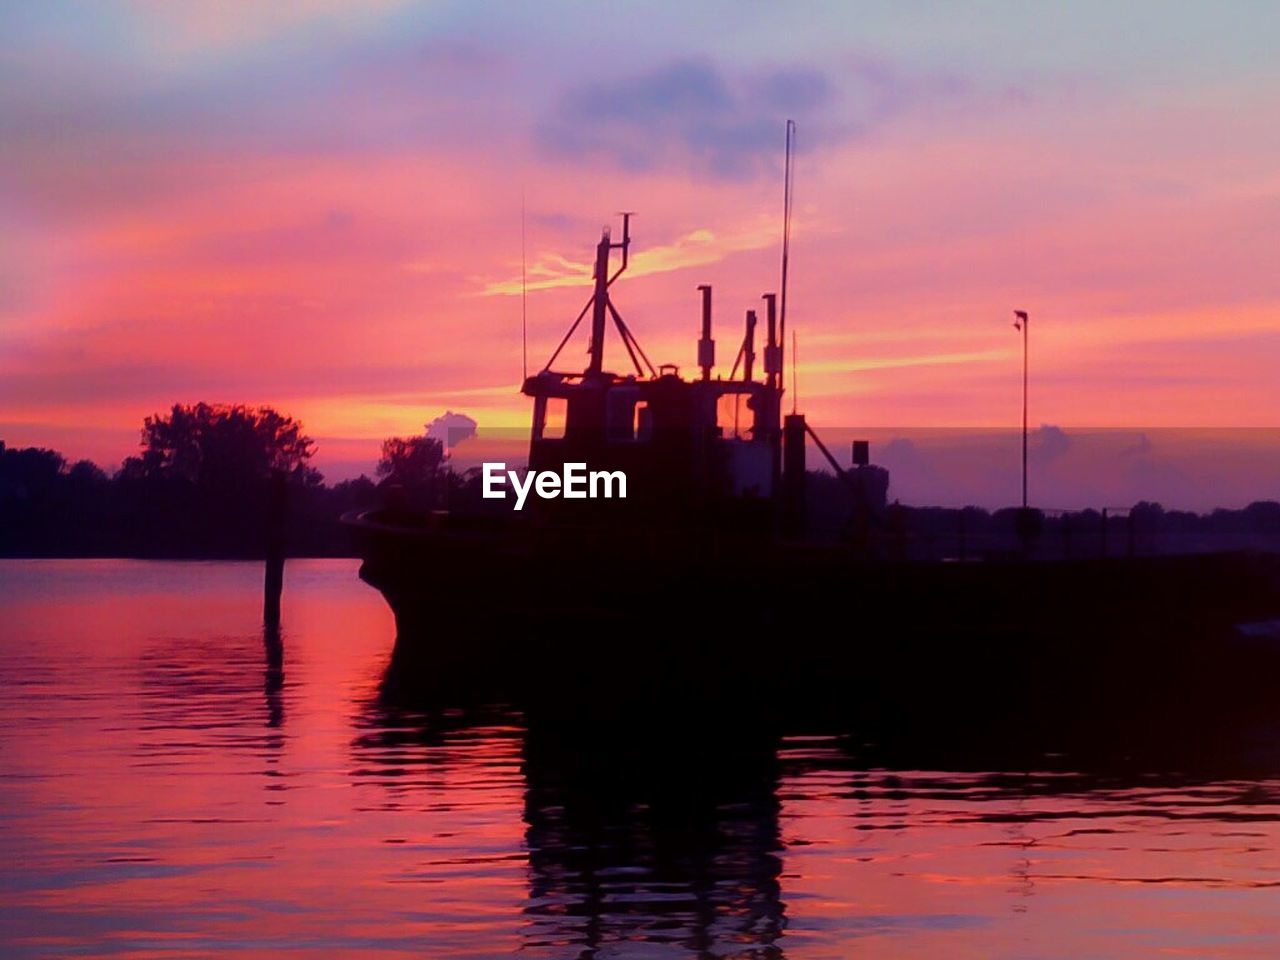 sunset, water, sky, nautical vessel, reflection, waterfront, cloud - sky, silhouette, nature, orange color, beauty in nature, tranquility, lake, no people, outdoors, scenics, dusk, transportation, moored, harbor, mast, night